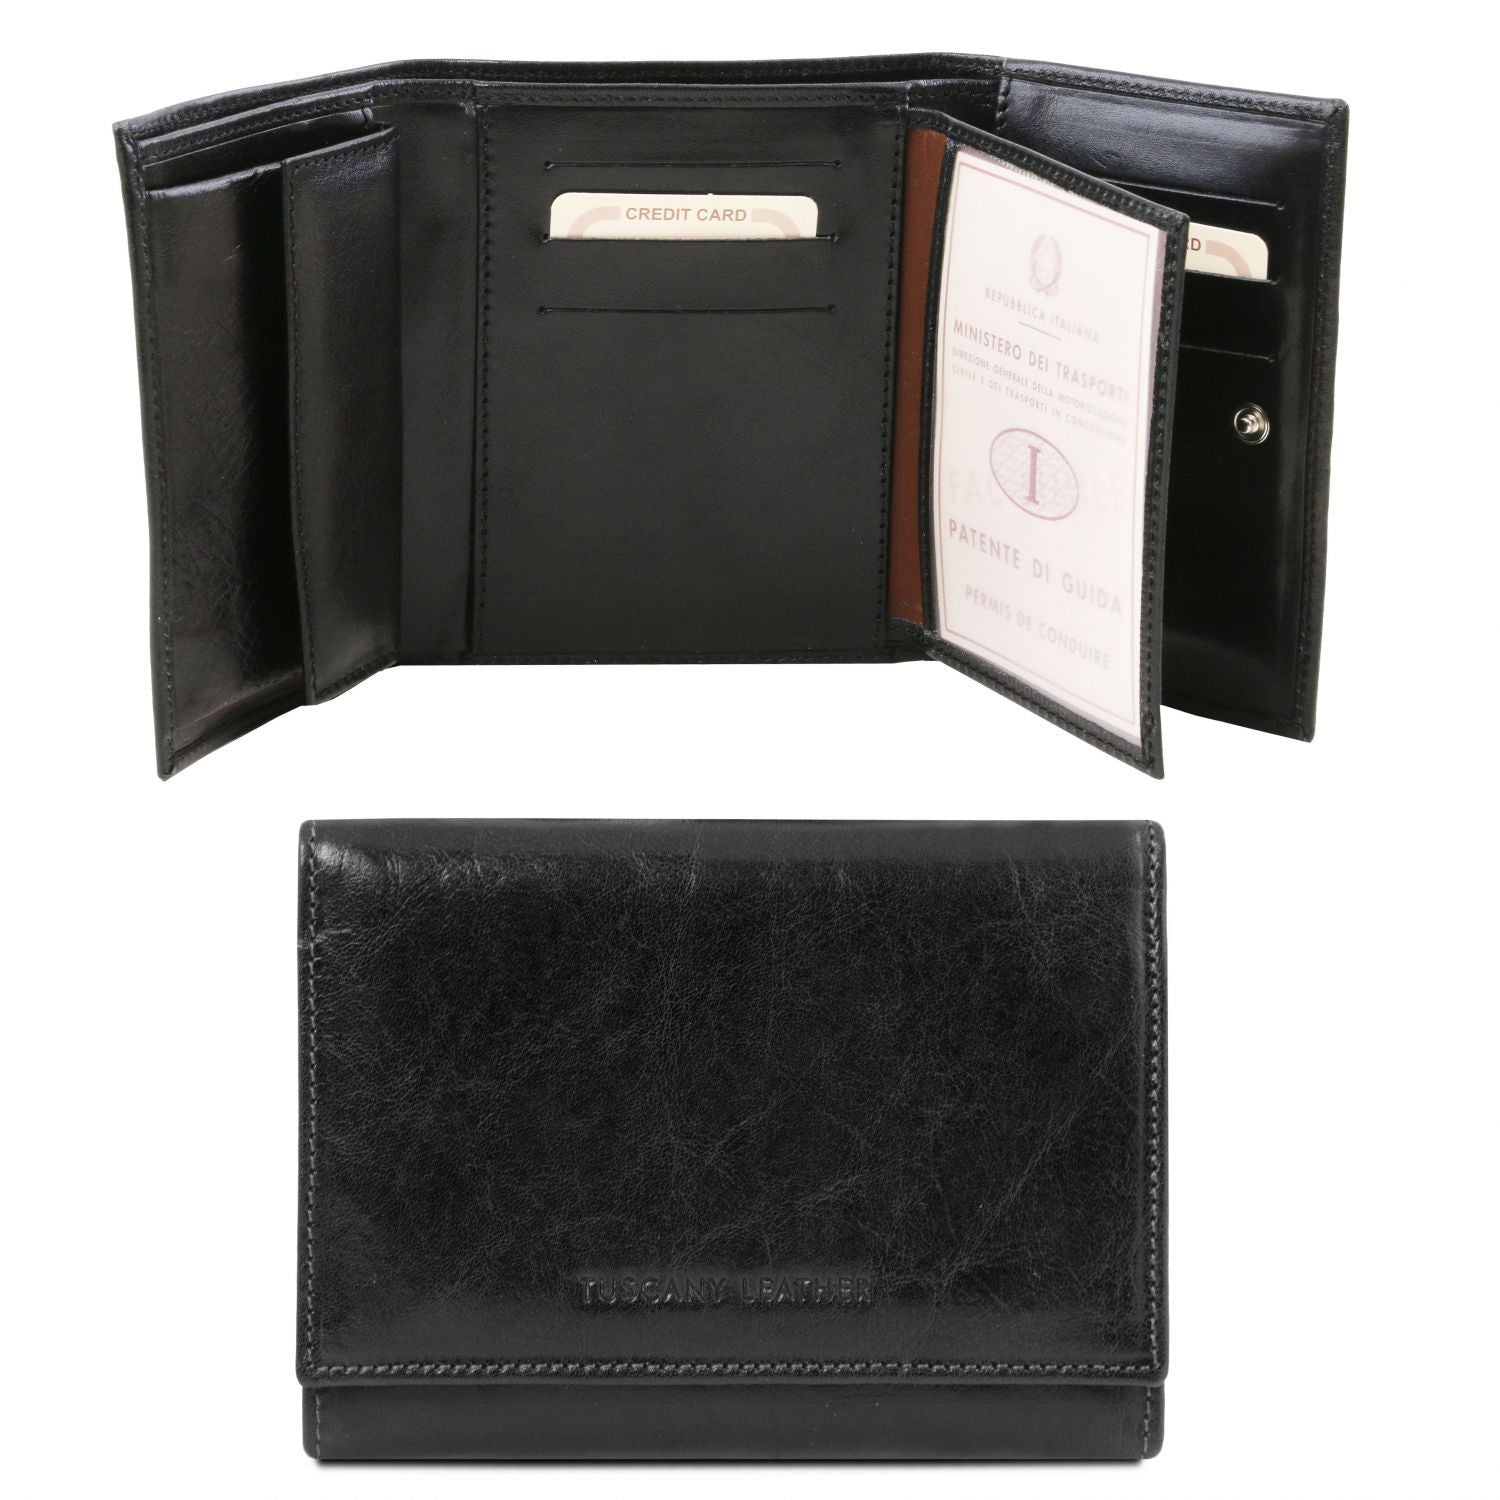 Exclusive leather wallet for women (TL140790) - Leather wallets for women | DILUSSOBAGS